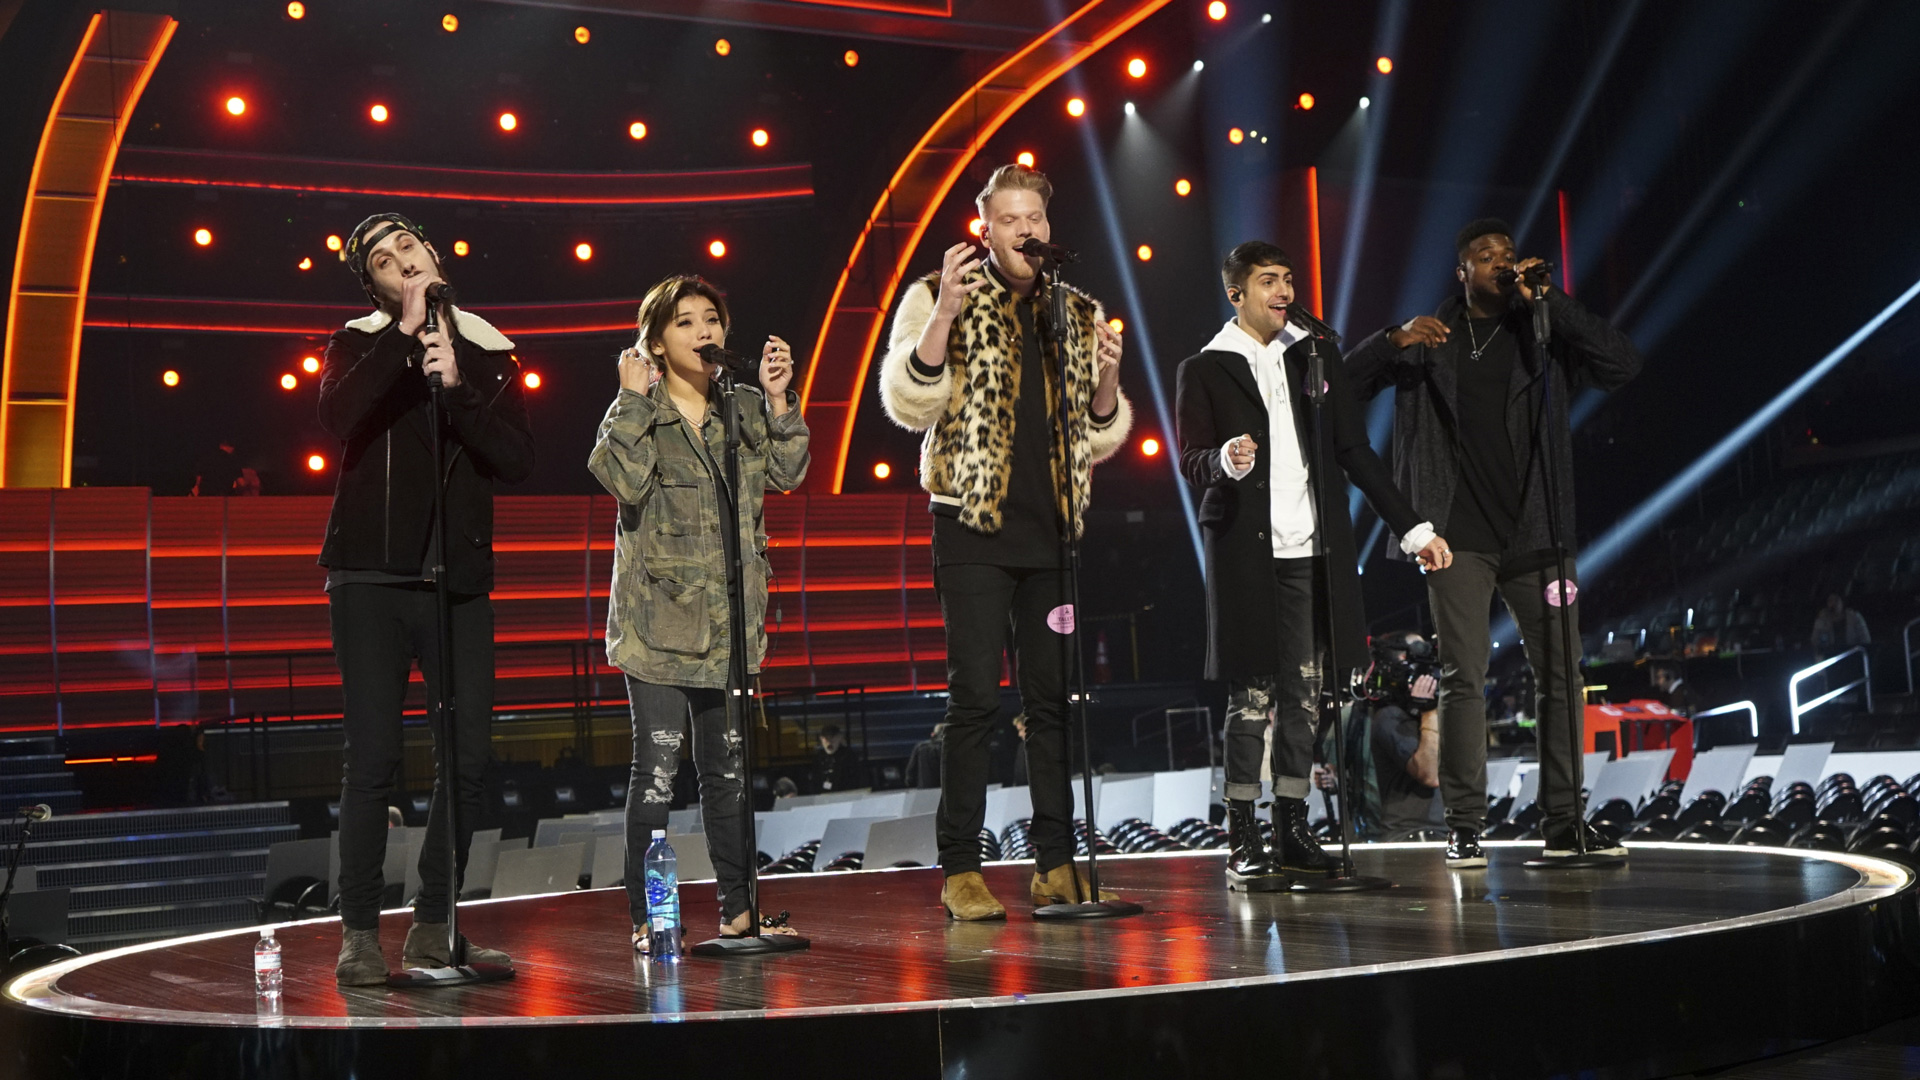 Venture backstage and take a glimpse at all the 2017 GRAMMY Awards rehearsal action.